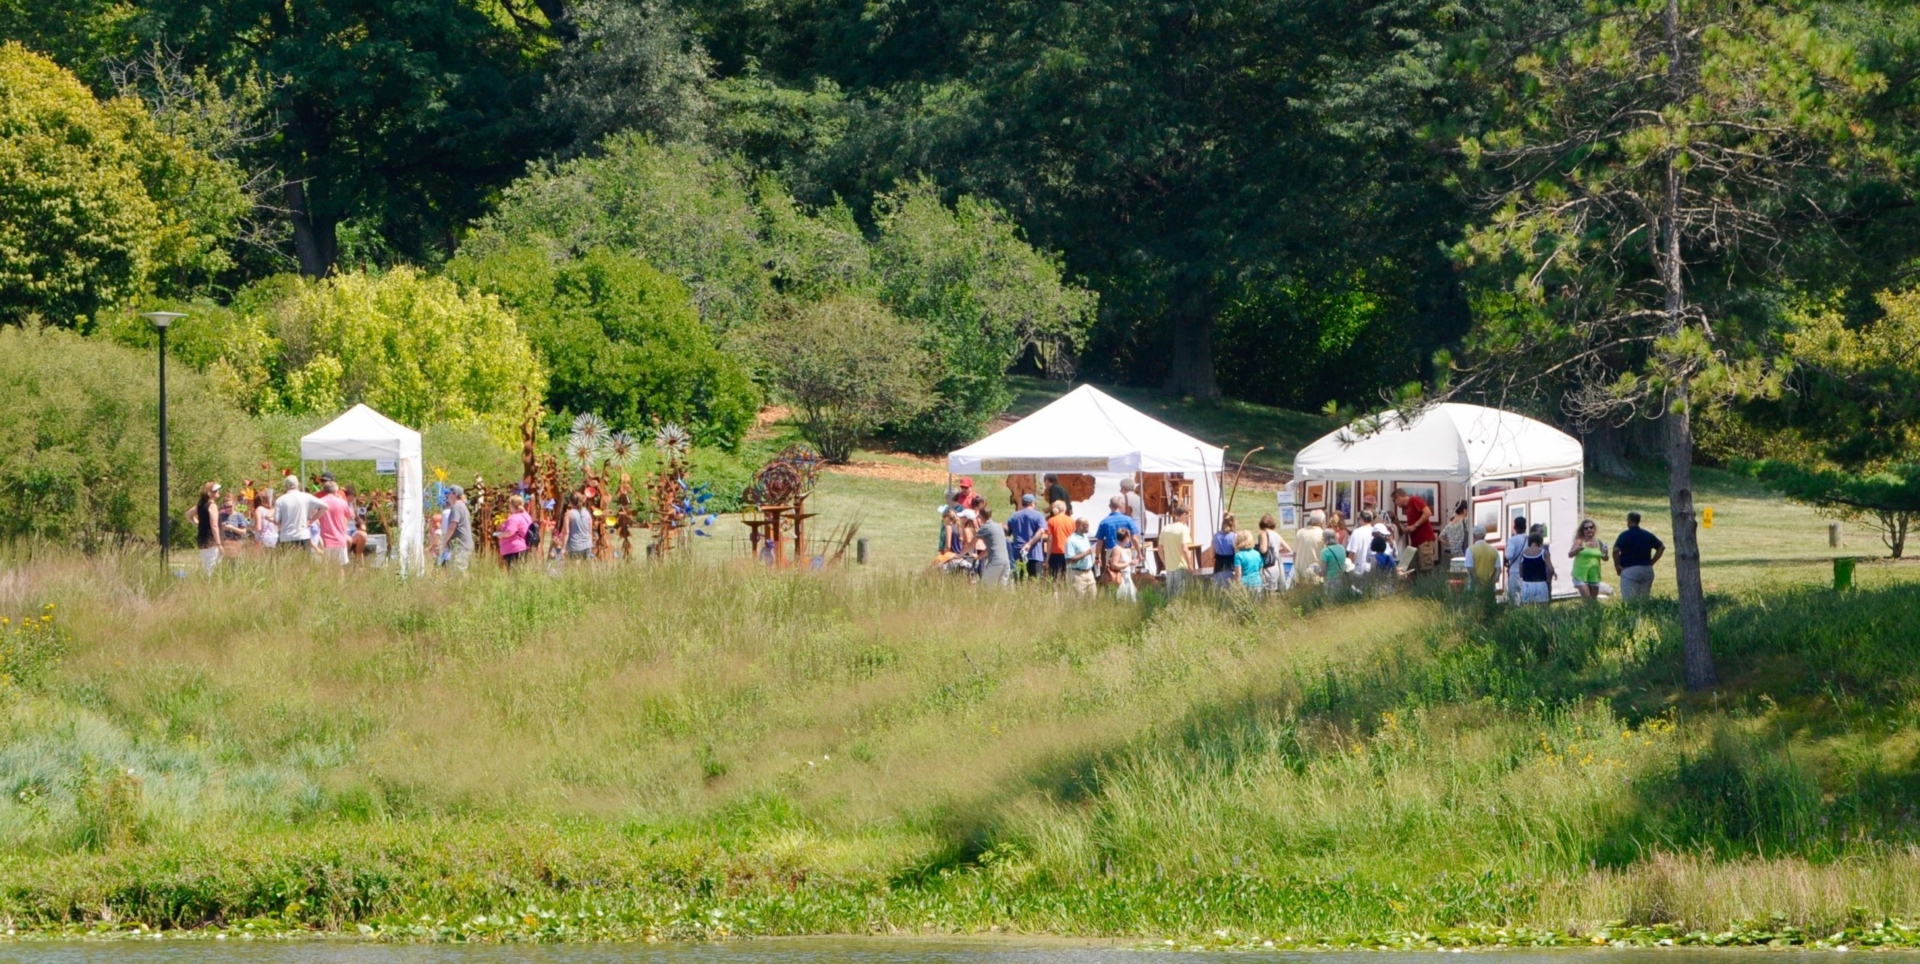 Wine and art walk event around Meadow Lake in the summer